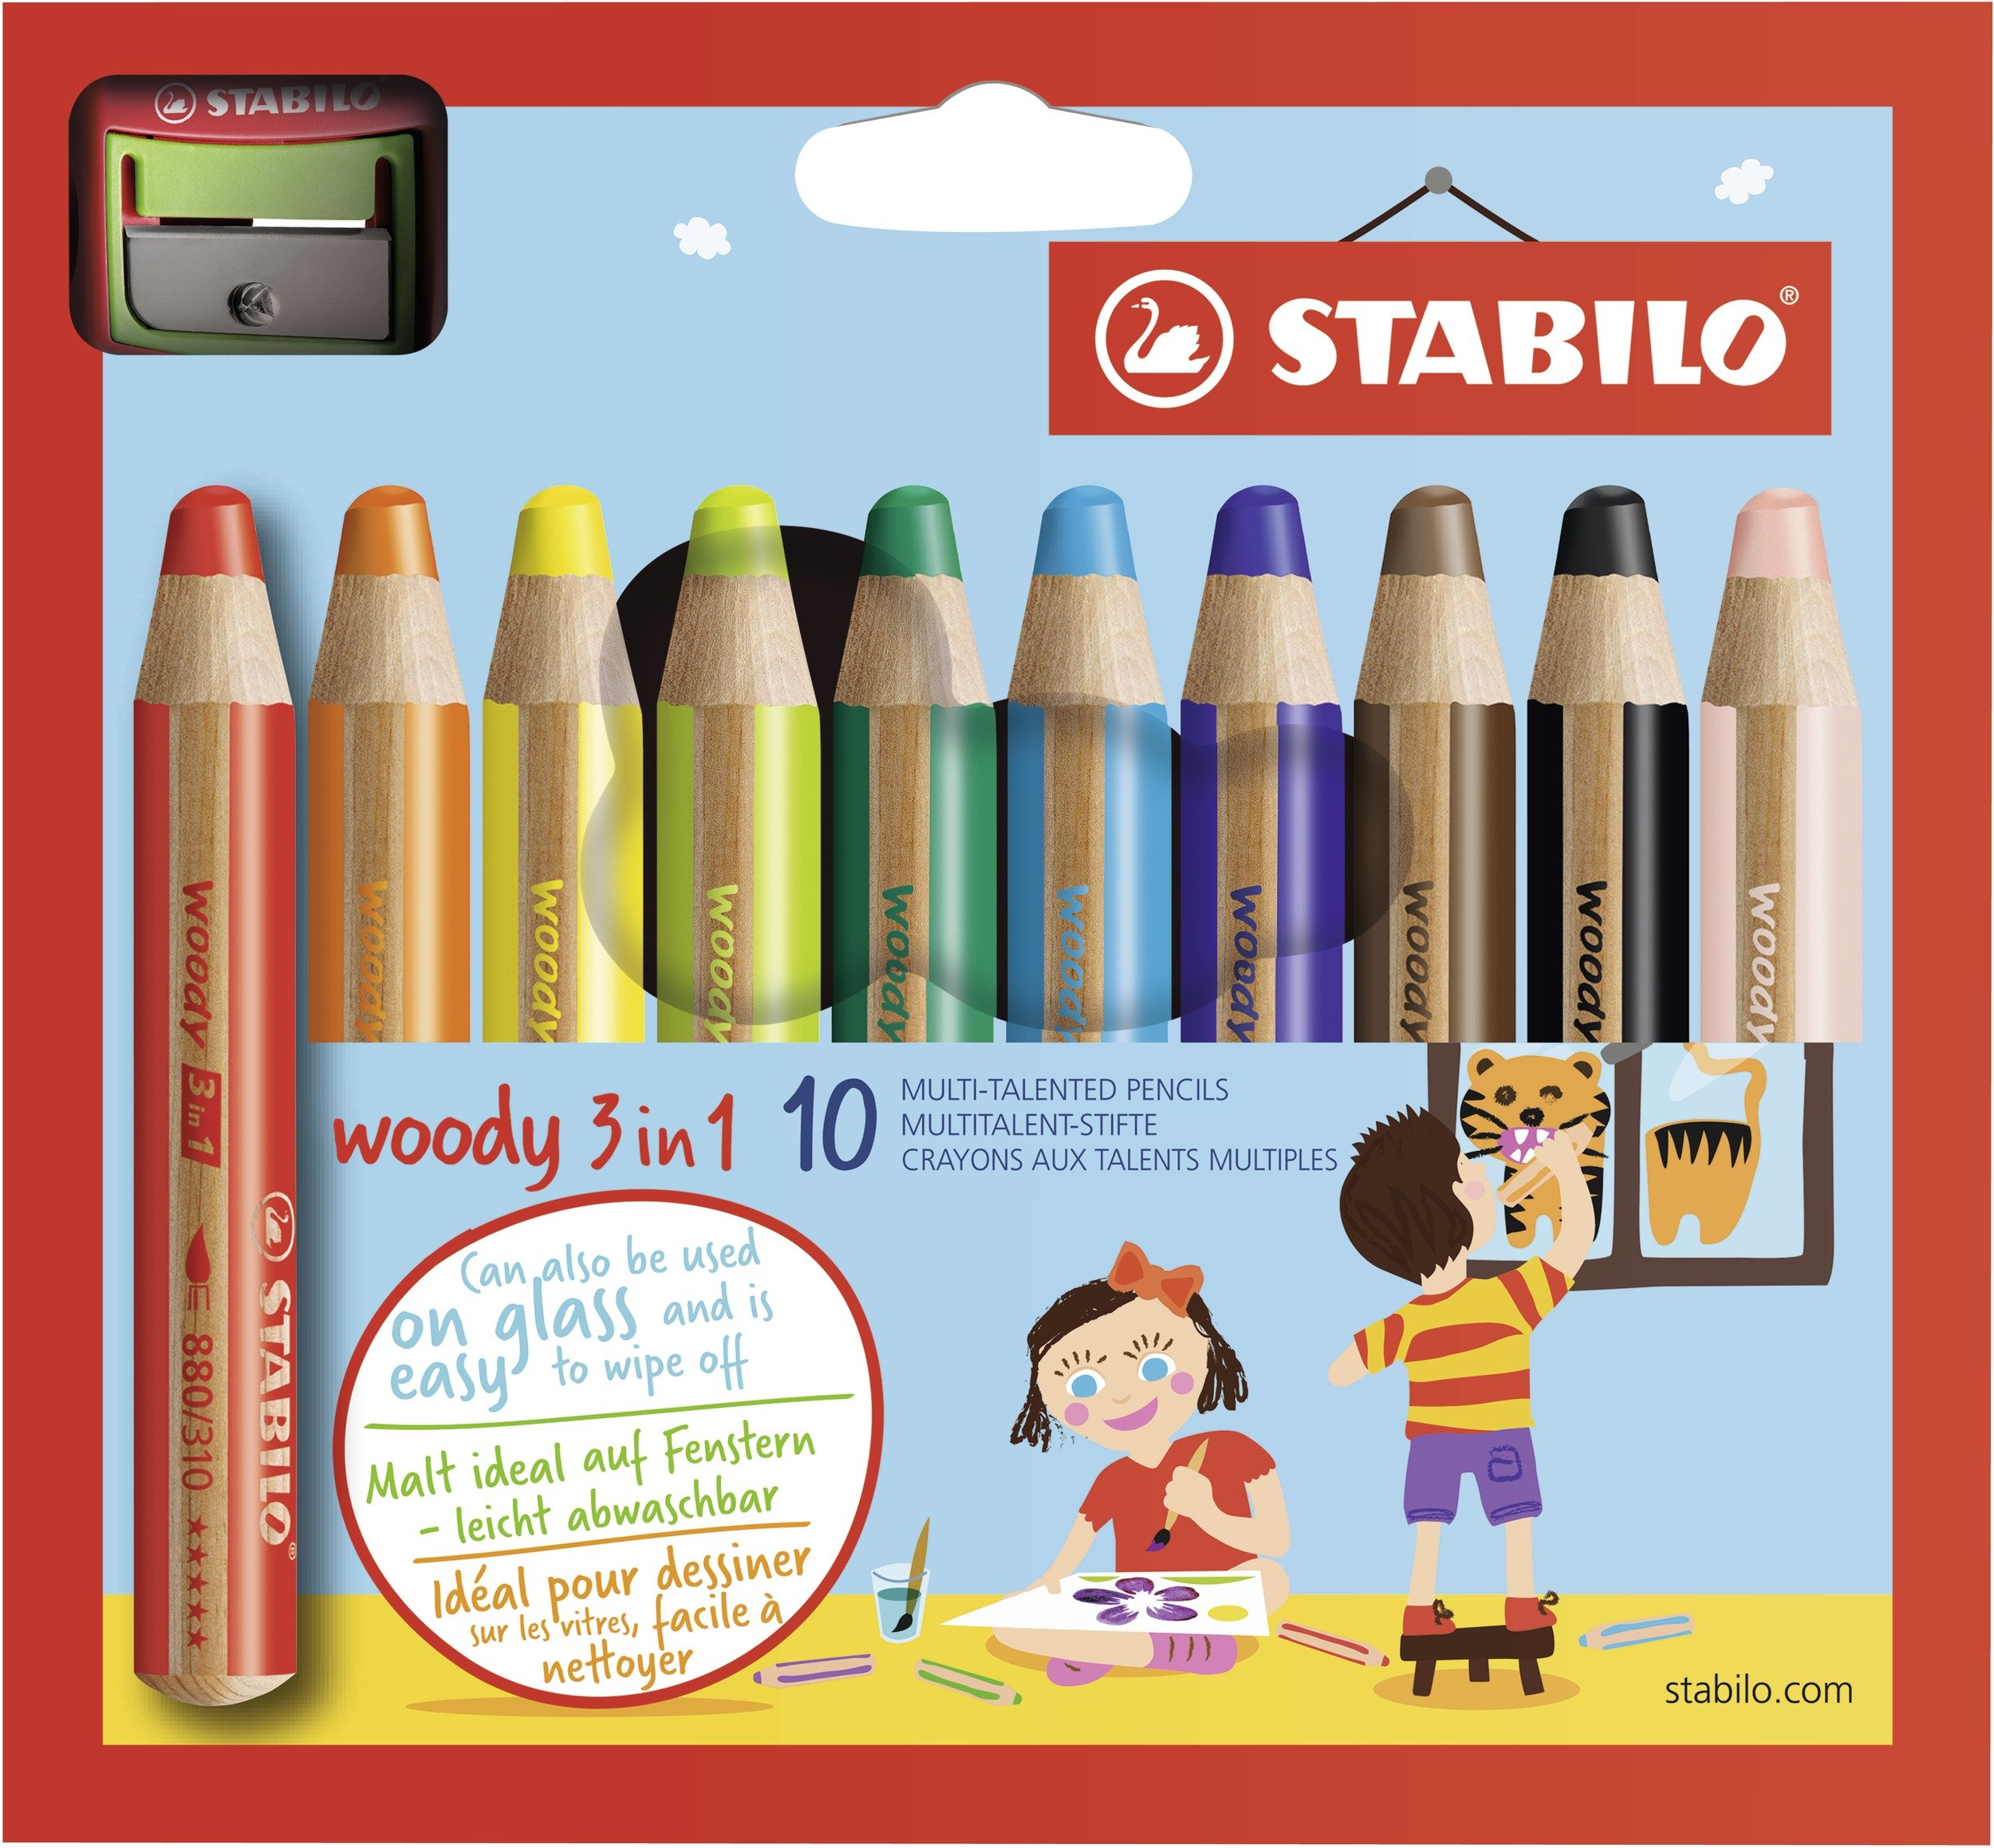 Stabilo Woody 3-in-1 Colored Pencils, 10 mm Lead - 10-Color Set